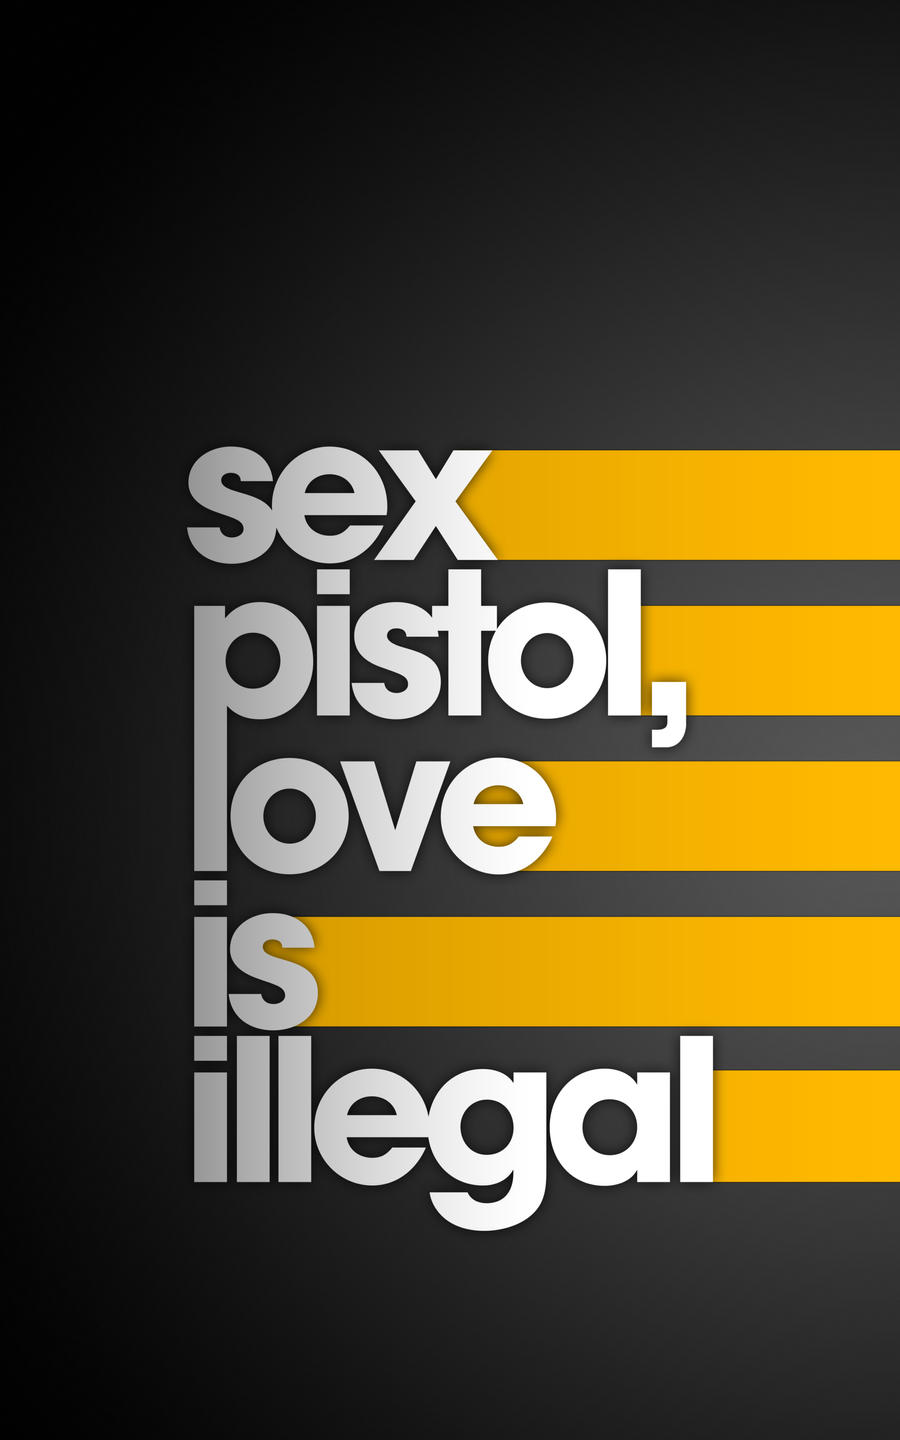 Sex Pistol by Anton101 I Love Typography #6: The Ultimate Source of Text Art Inspiration